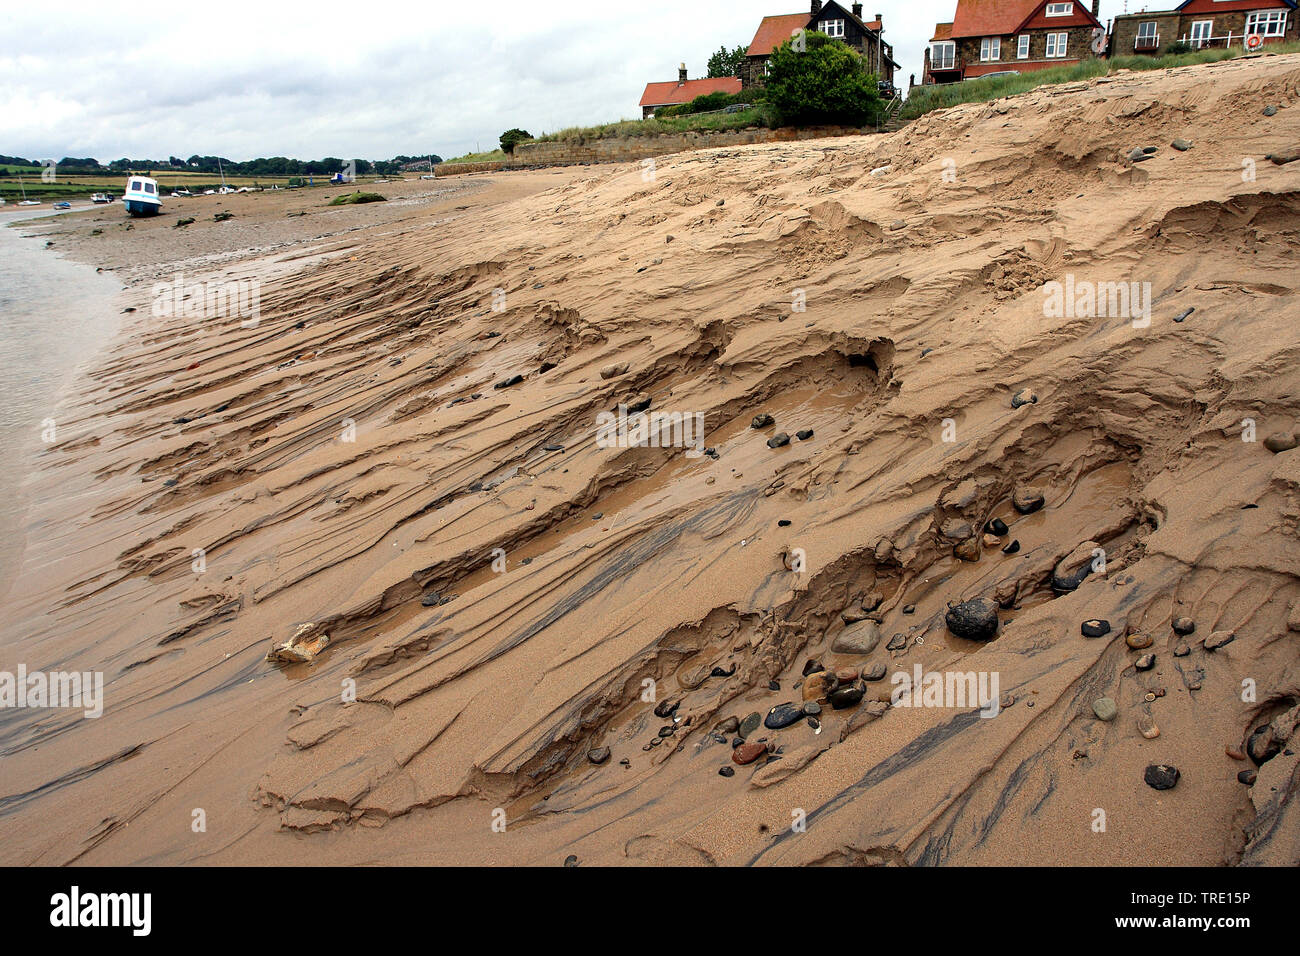 Duenen in Alnmouth, Grossbritannien, England, Northumberland   dunes in Alnmouth, United Kingdom, England, Northumberland   BLWS514225.jpg [ (c) blick - Stock Image